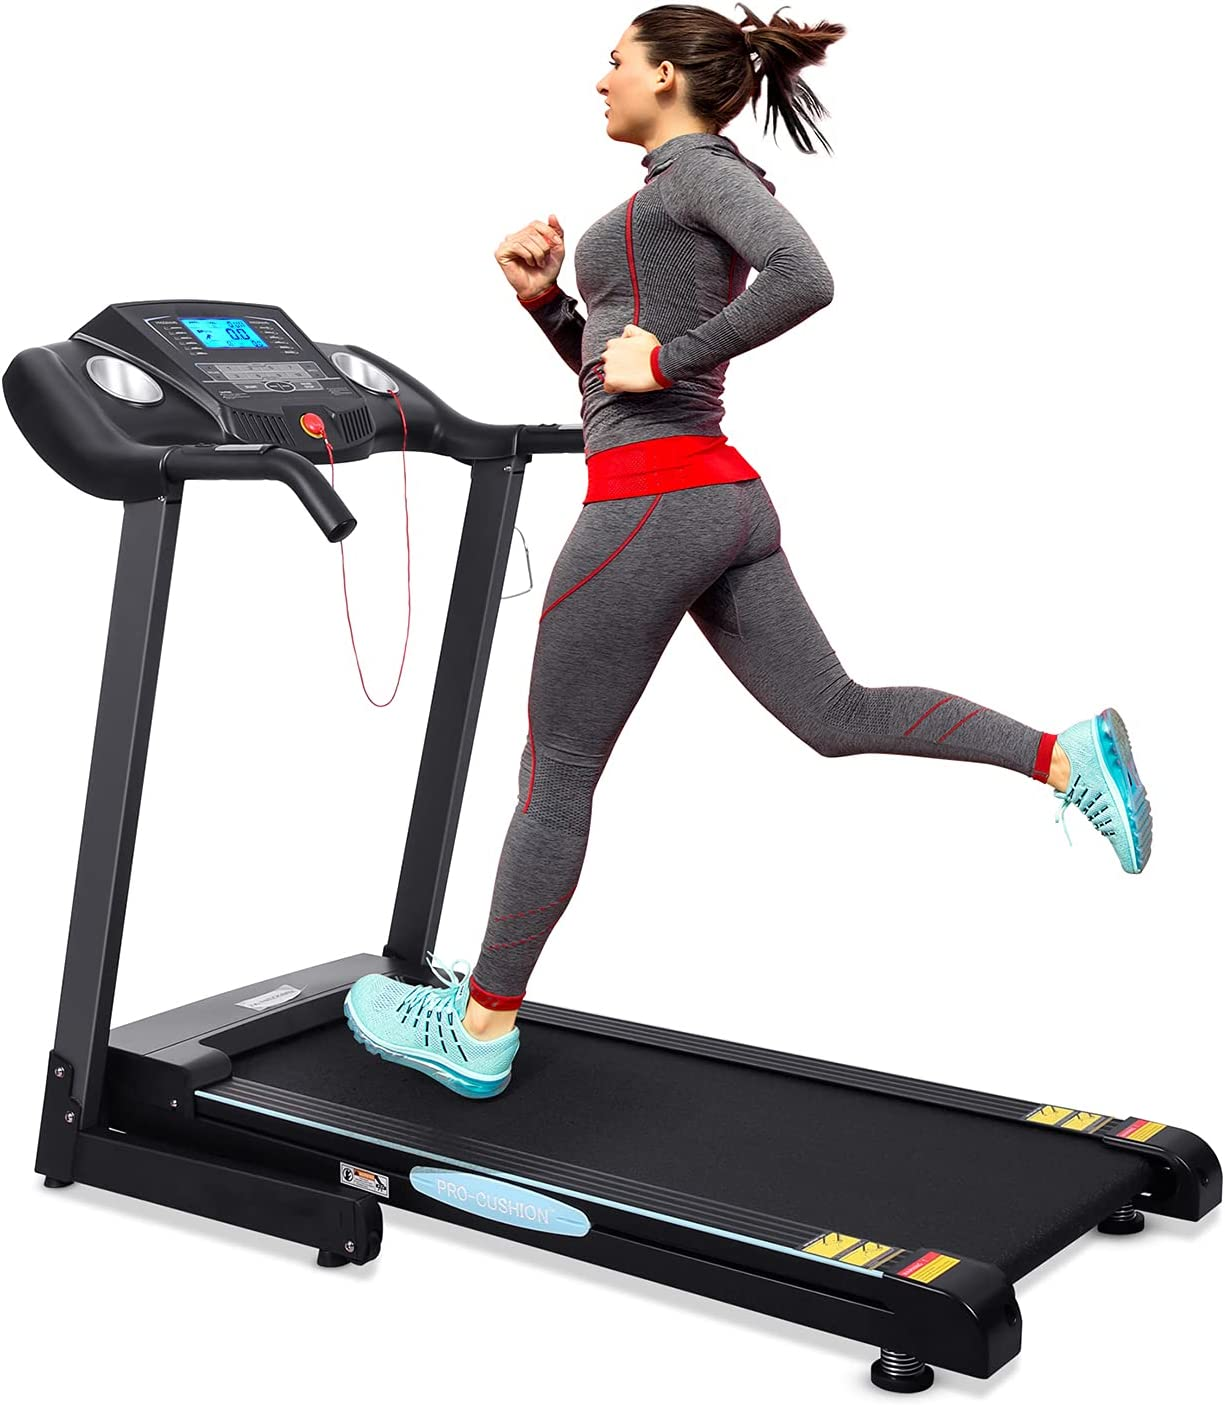 Treadmill Folding Running Machine Outlet ☆ Free Shipping Sales results No. 1 Auto with 12-Level I